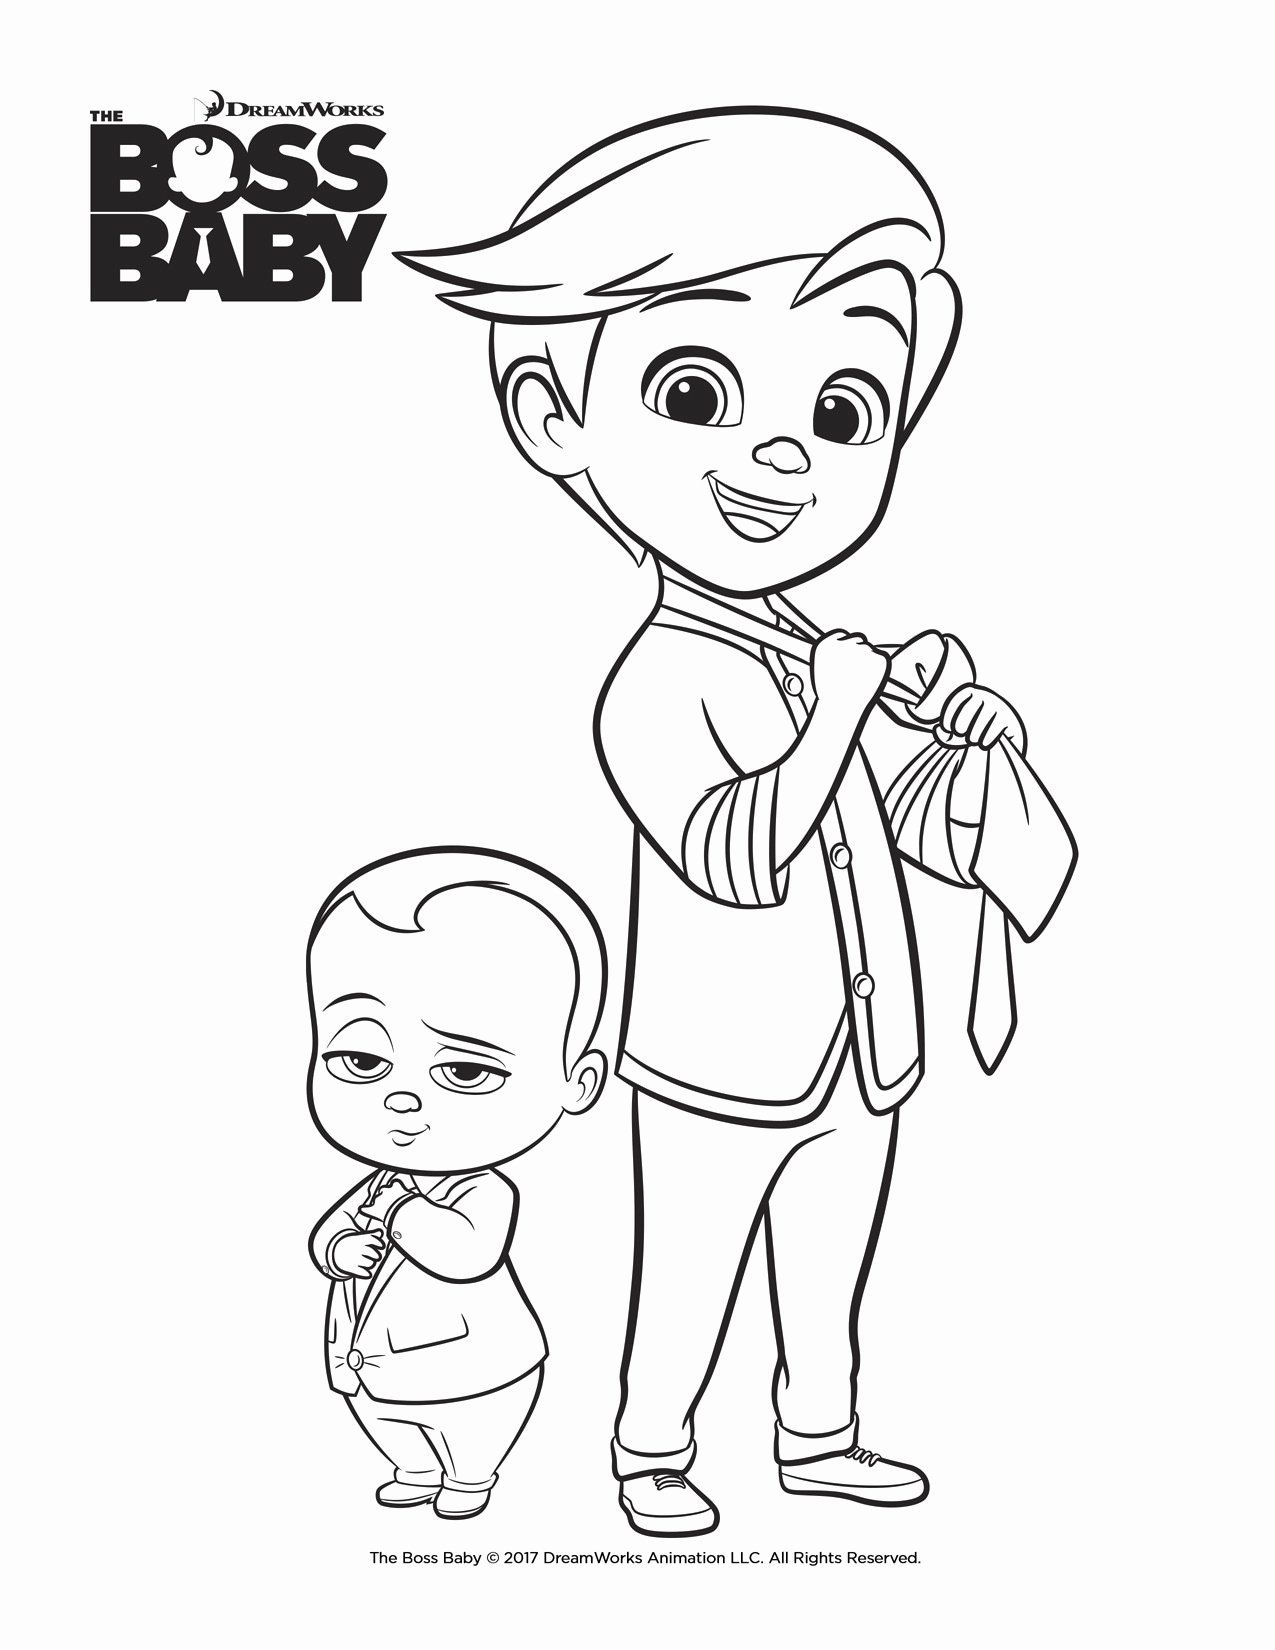 Boss Baby Coloring Page Best Of Celebrating Siblings And Friendships With The Boss Baby Mummy In The C Baby Coloring Pages Puppy Coloring Pages Baby Printables